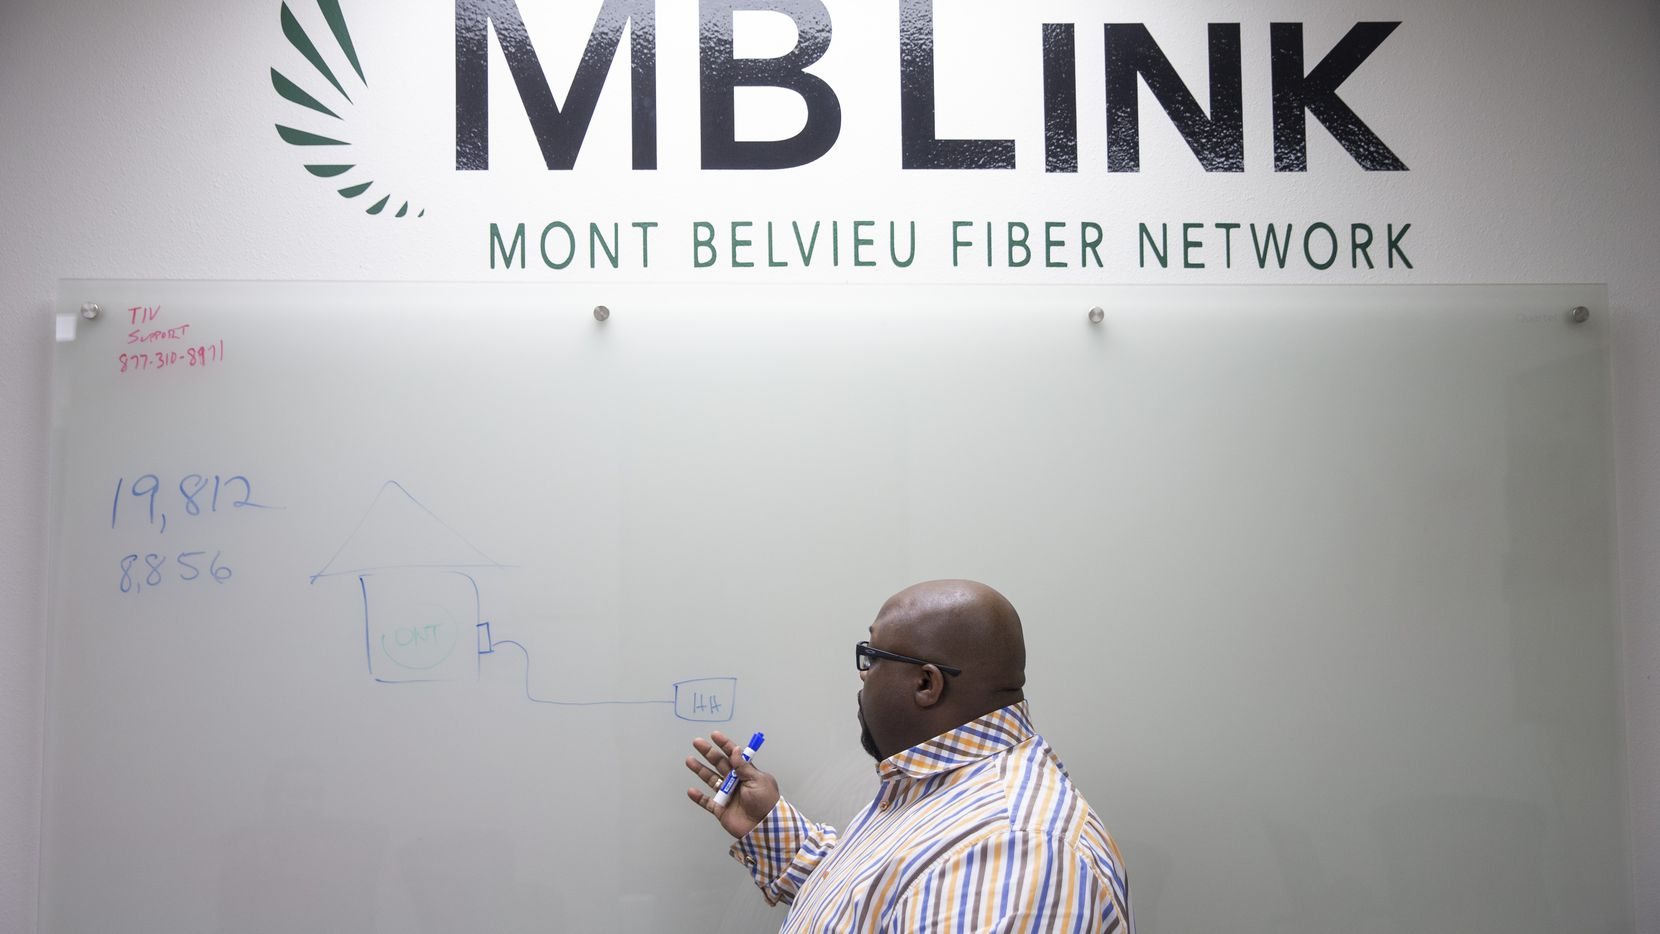 Dwight Thomas, a former IT consultant, is director of Mont Belvieu's broadband and information technology services. In his role, he's become a municipal broadband evangelist. He's spread the word among city residents and met with leaders of other Texas towns.